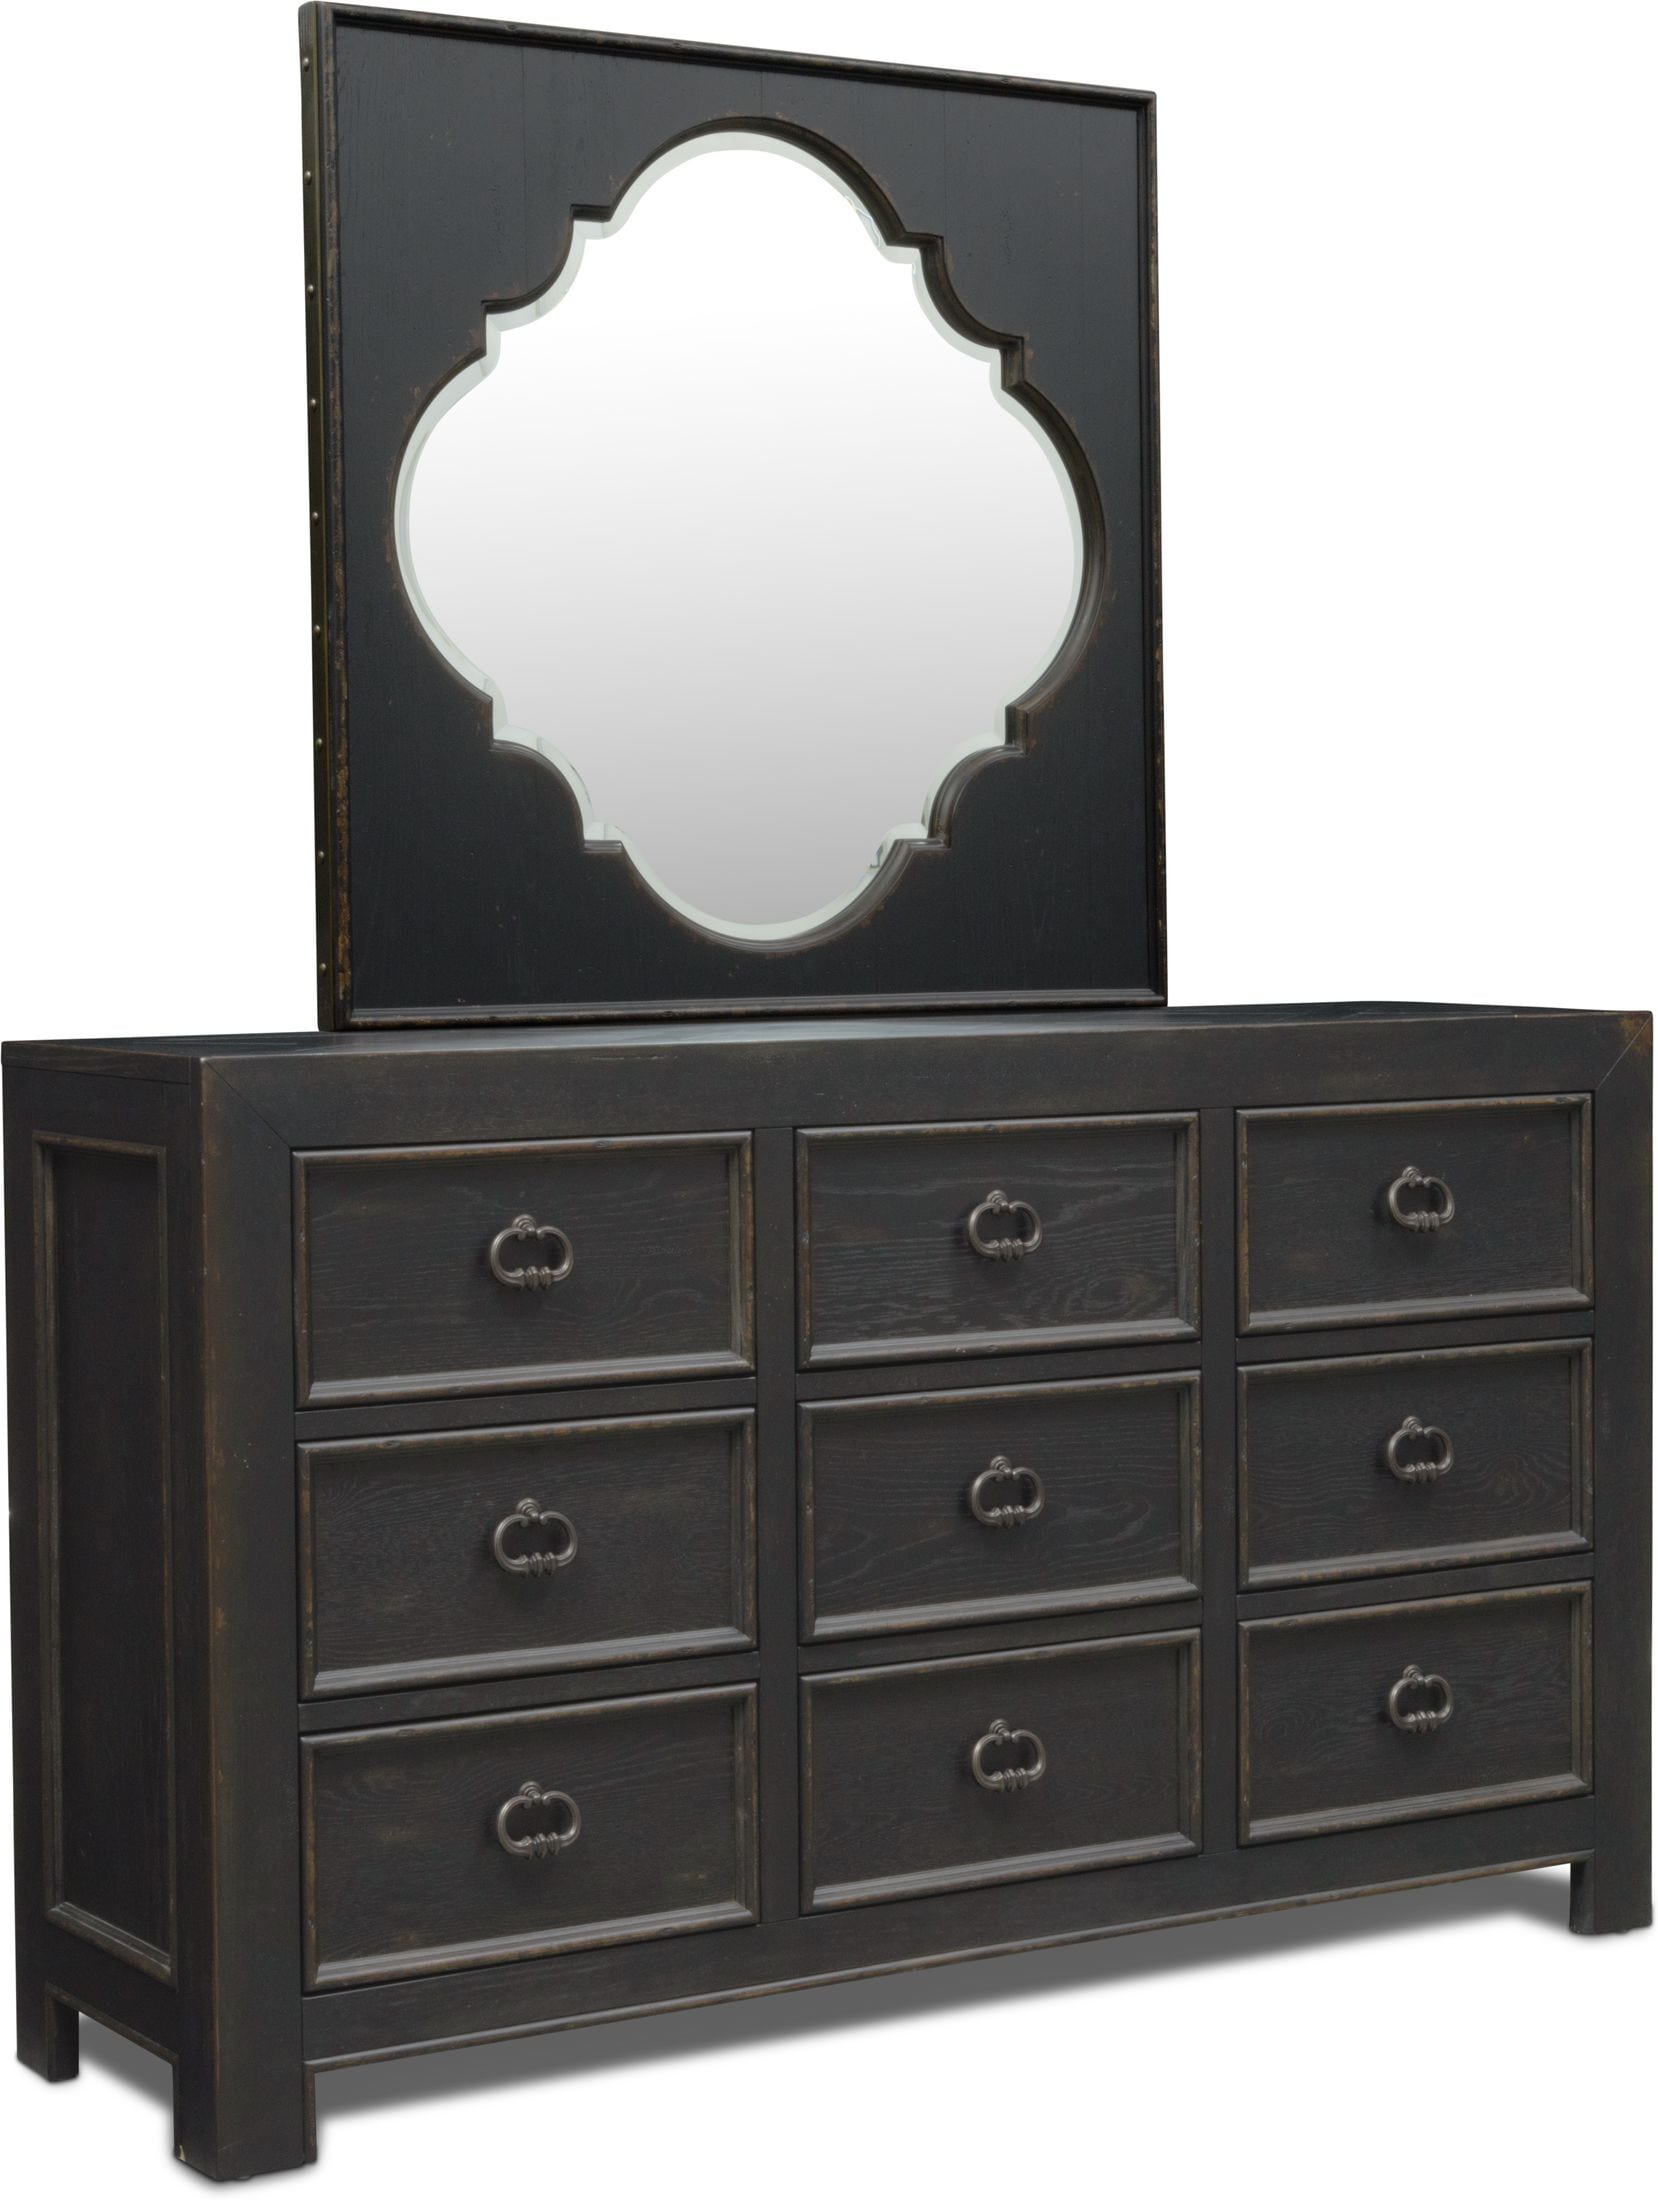 Bedroom Furniture - Lennon Dresser and Mirror